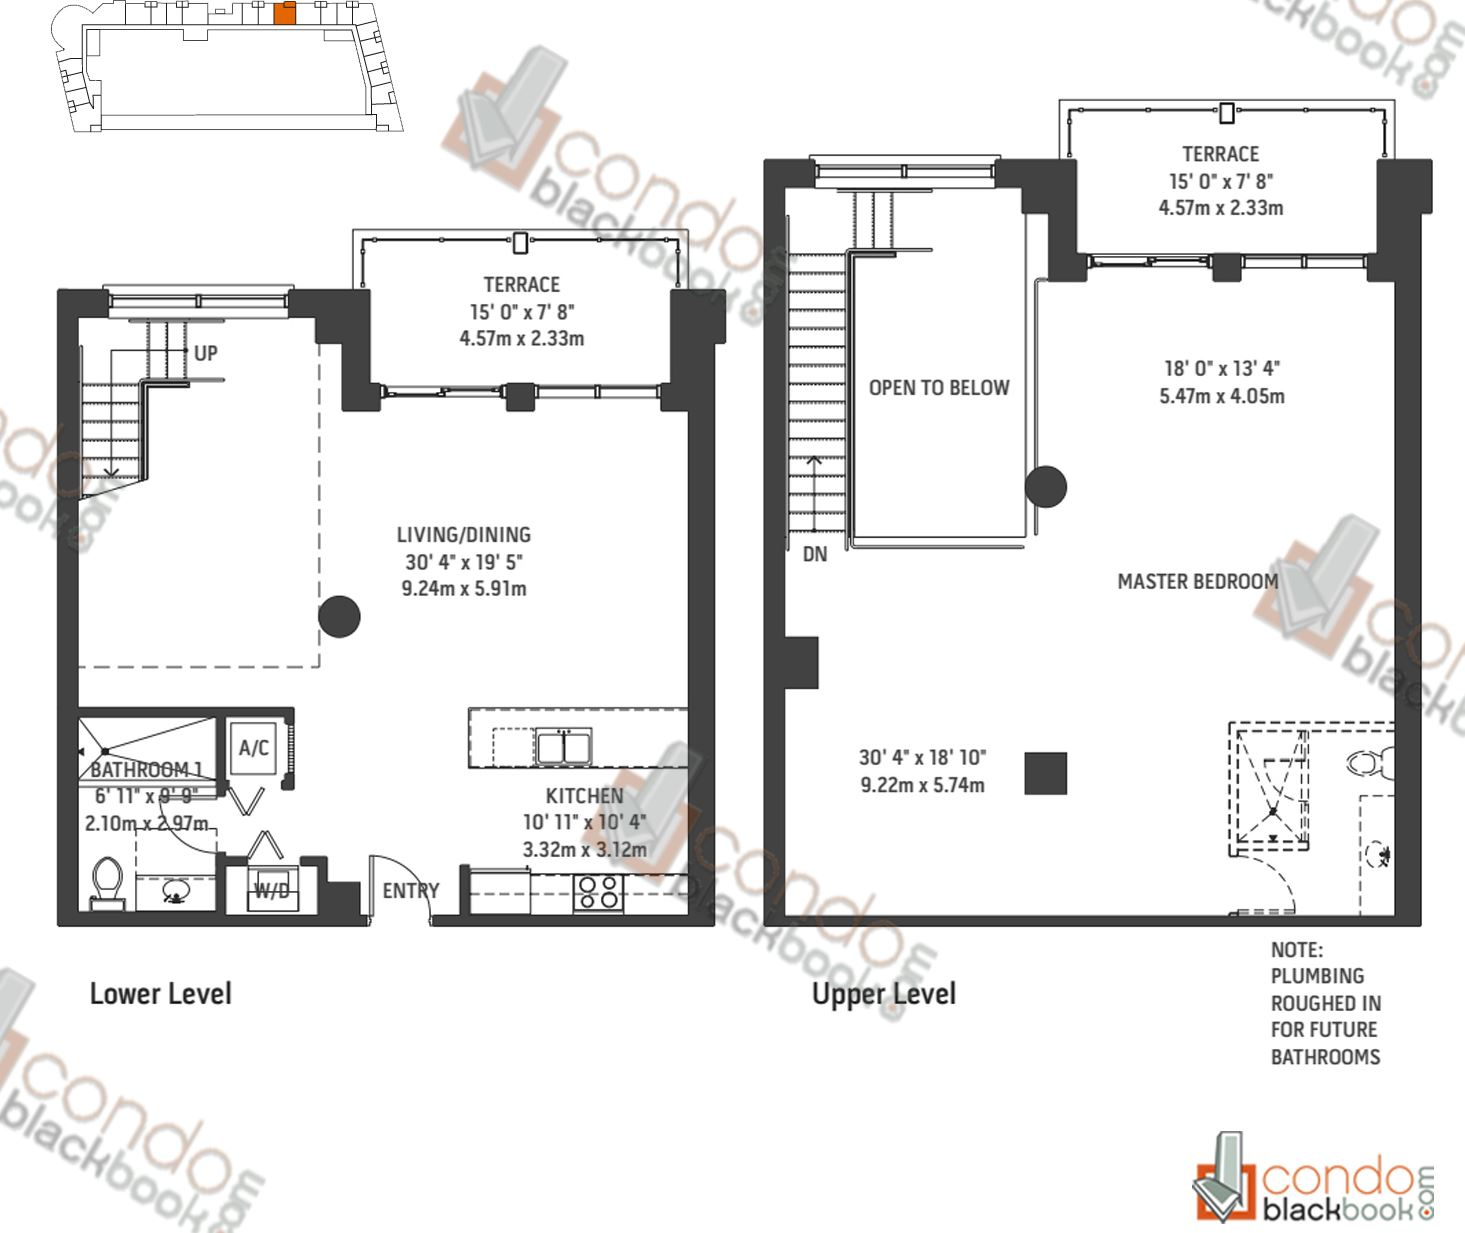 Floor plan for Midblock Condominium Midtown Miami, model Unit L6, line 06, 0/1 bedrooms, 1,809 sq ft